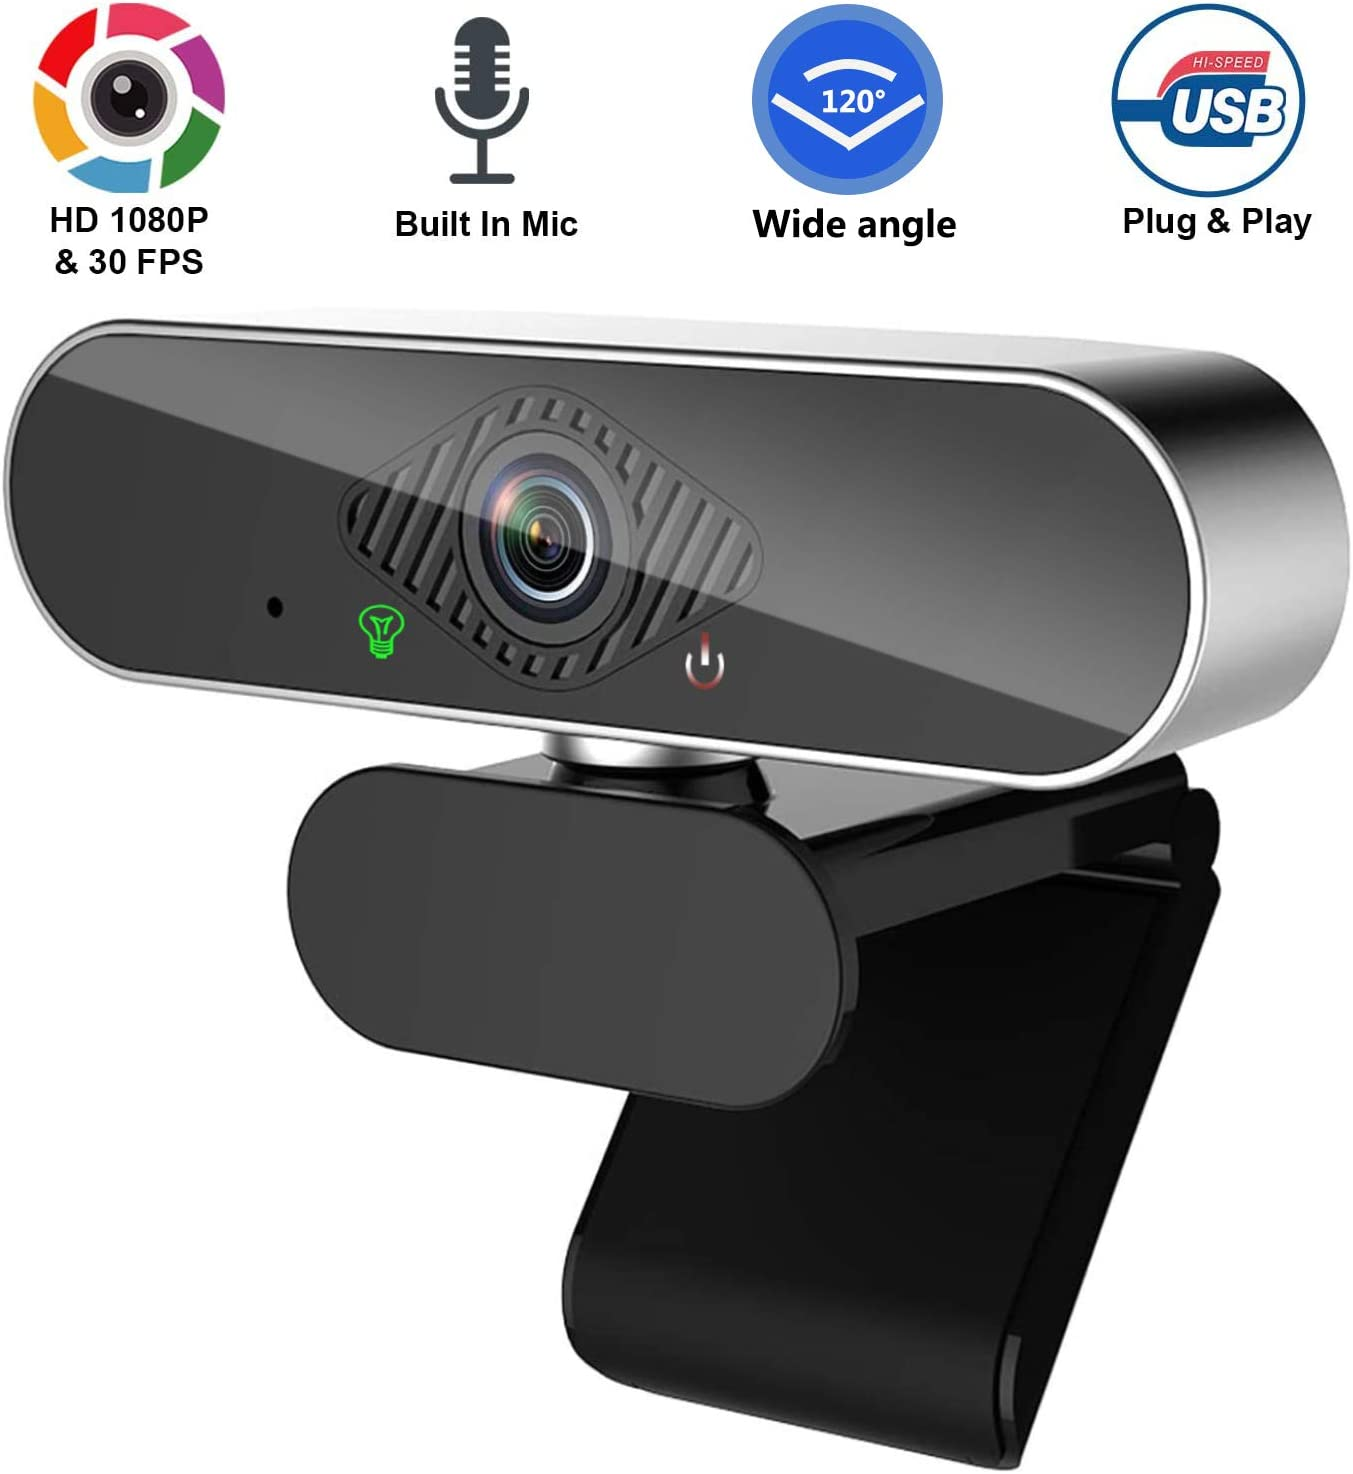 1080P Webcam with Microphone, HD PC Webcam Laptop Plug and Play USB Webcam Streaming Computer Web Camera with 120-Degree View Angle, Desktop Webcam for Video Calling Recording Conferencing-WB-3B